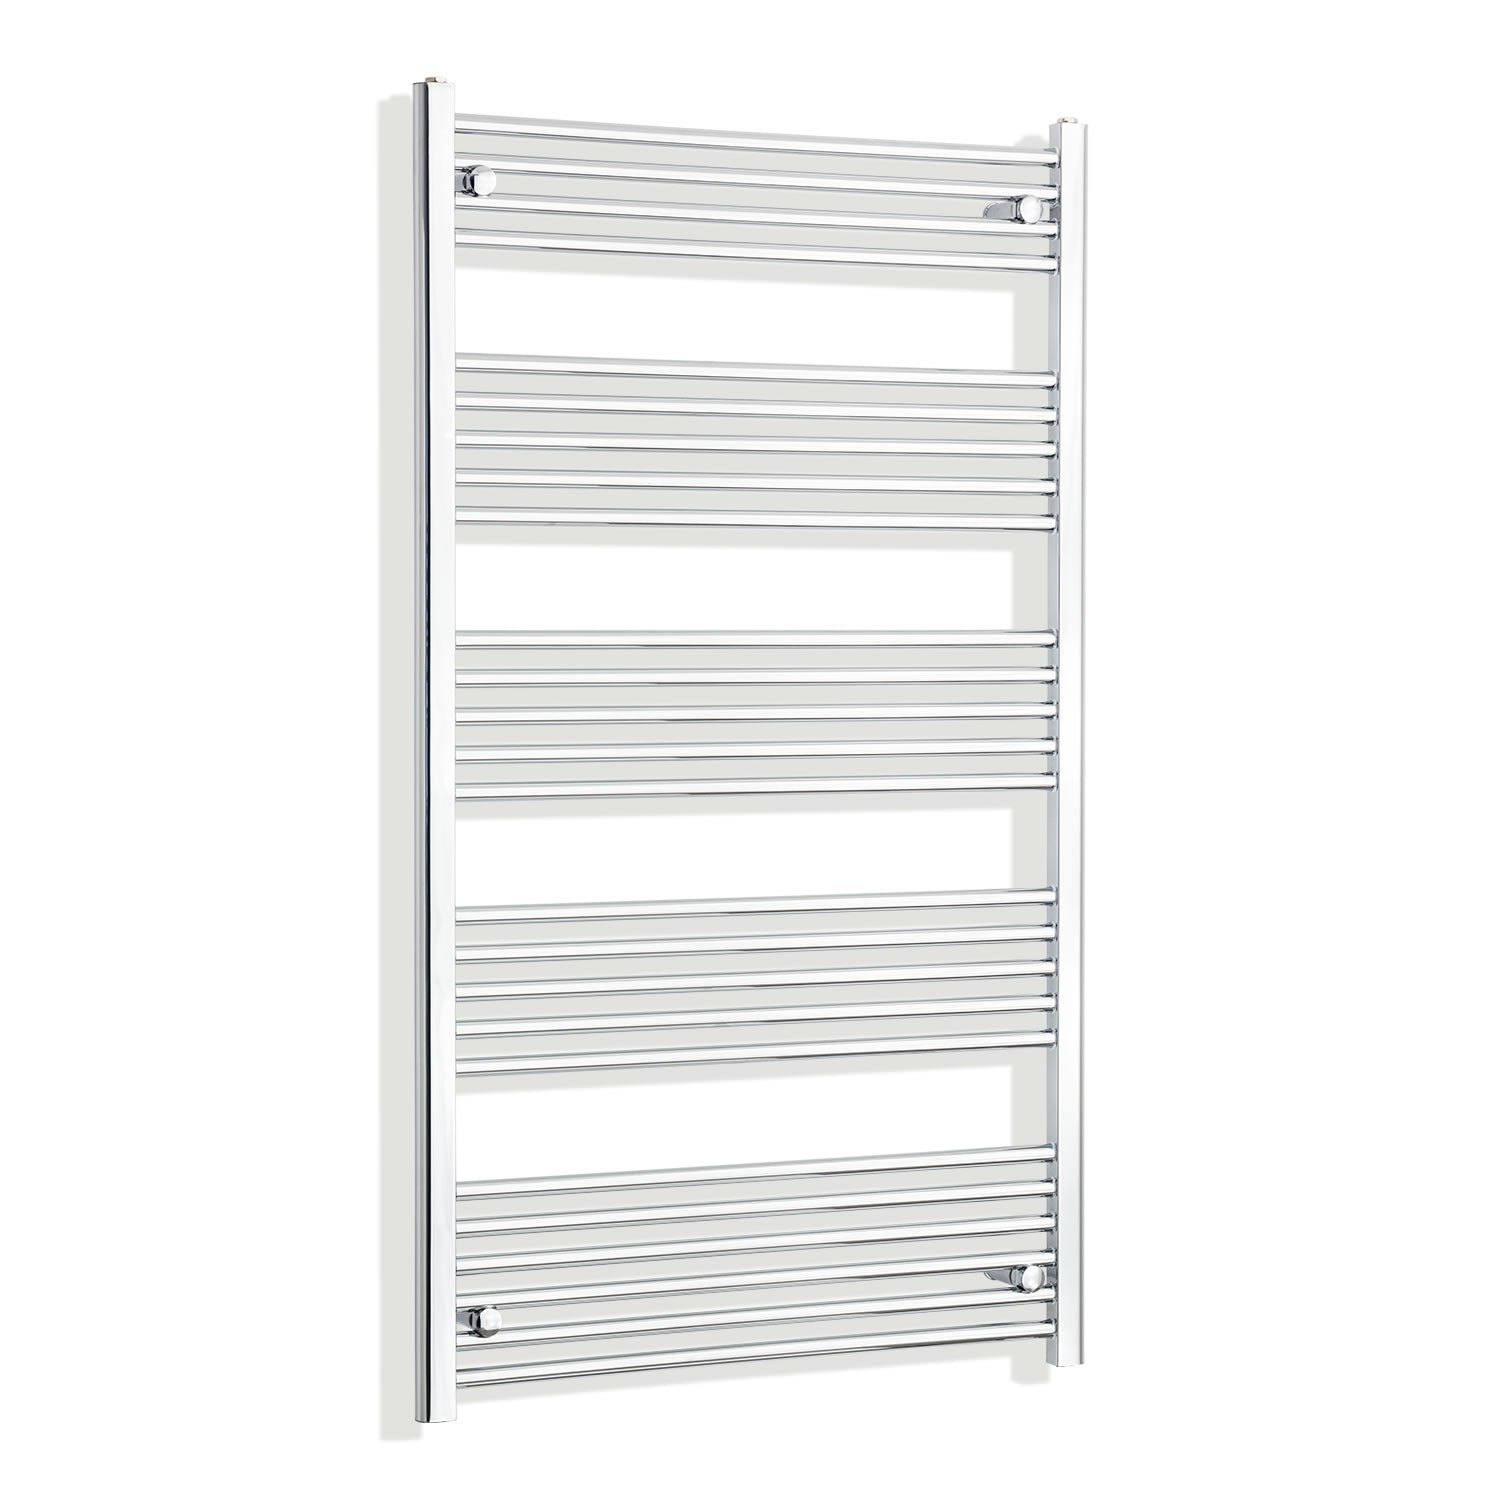 750mm Wide 1400mm High Flat Chrome Heated Towel Rail Radiator HTR,Towel Rail Only